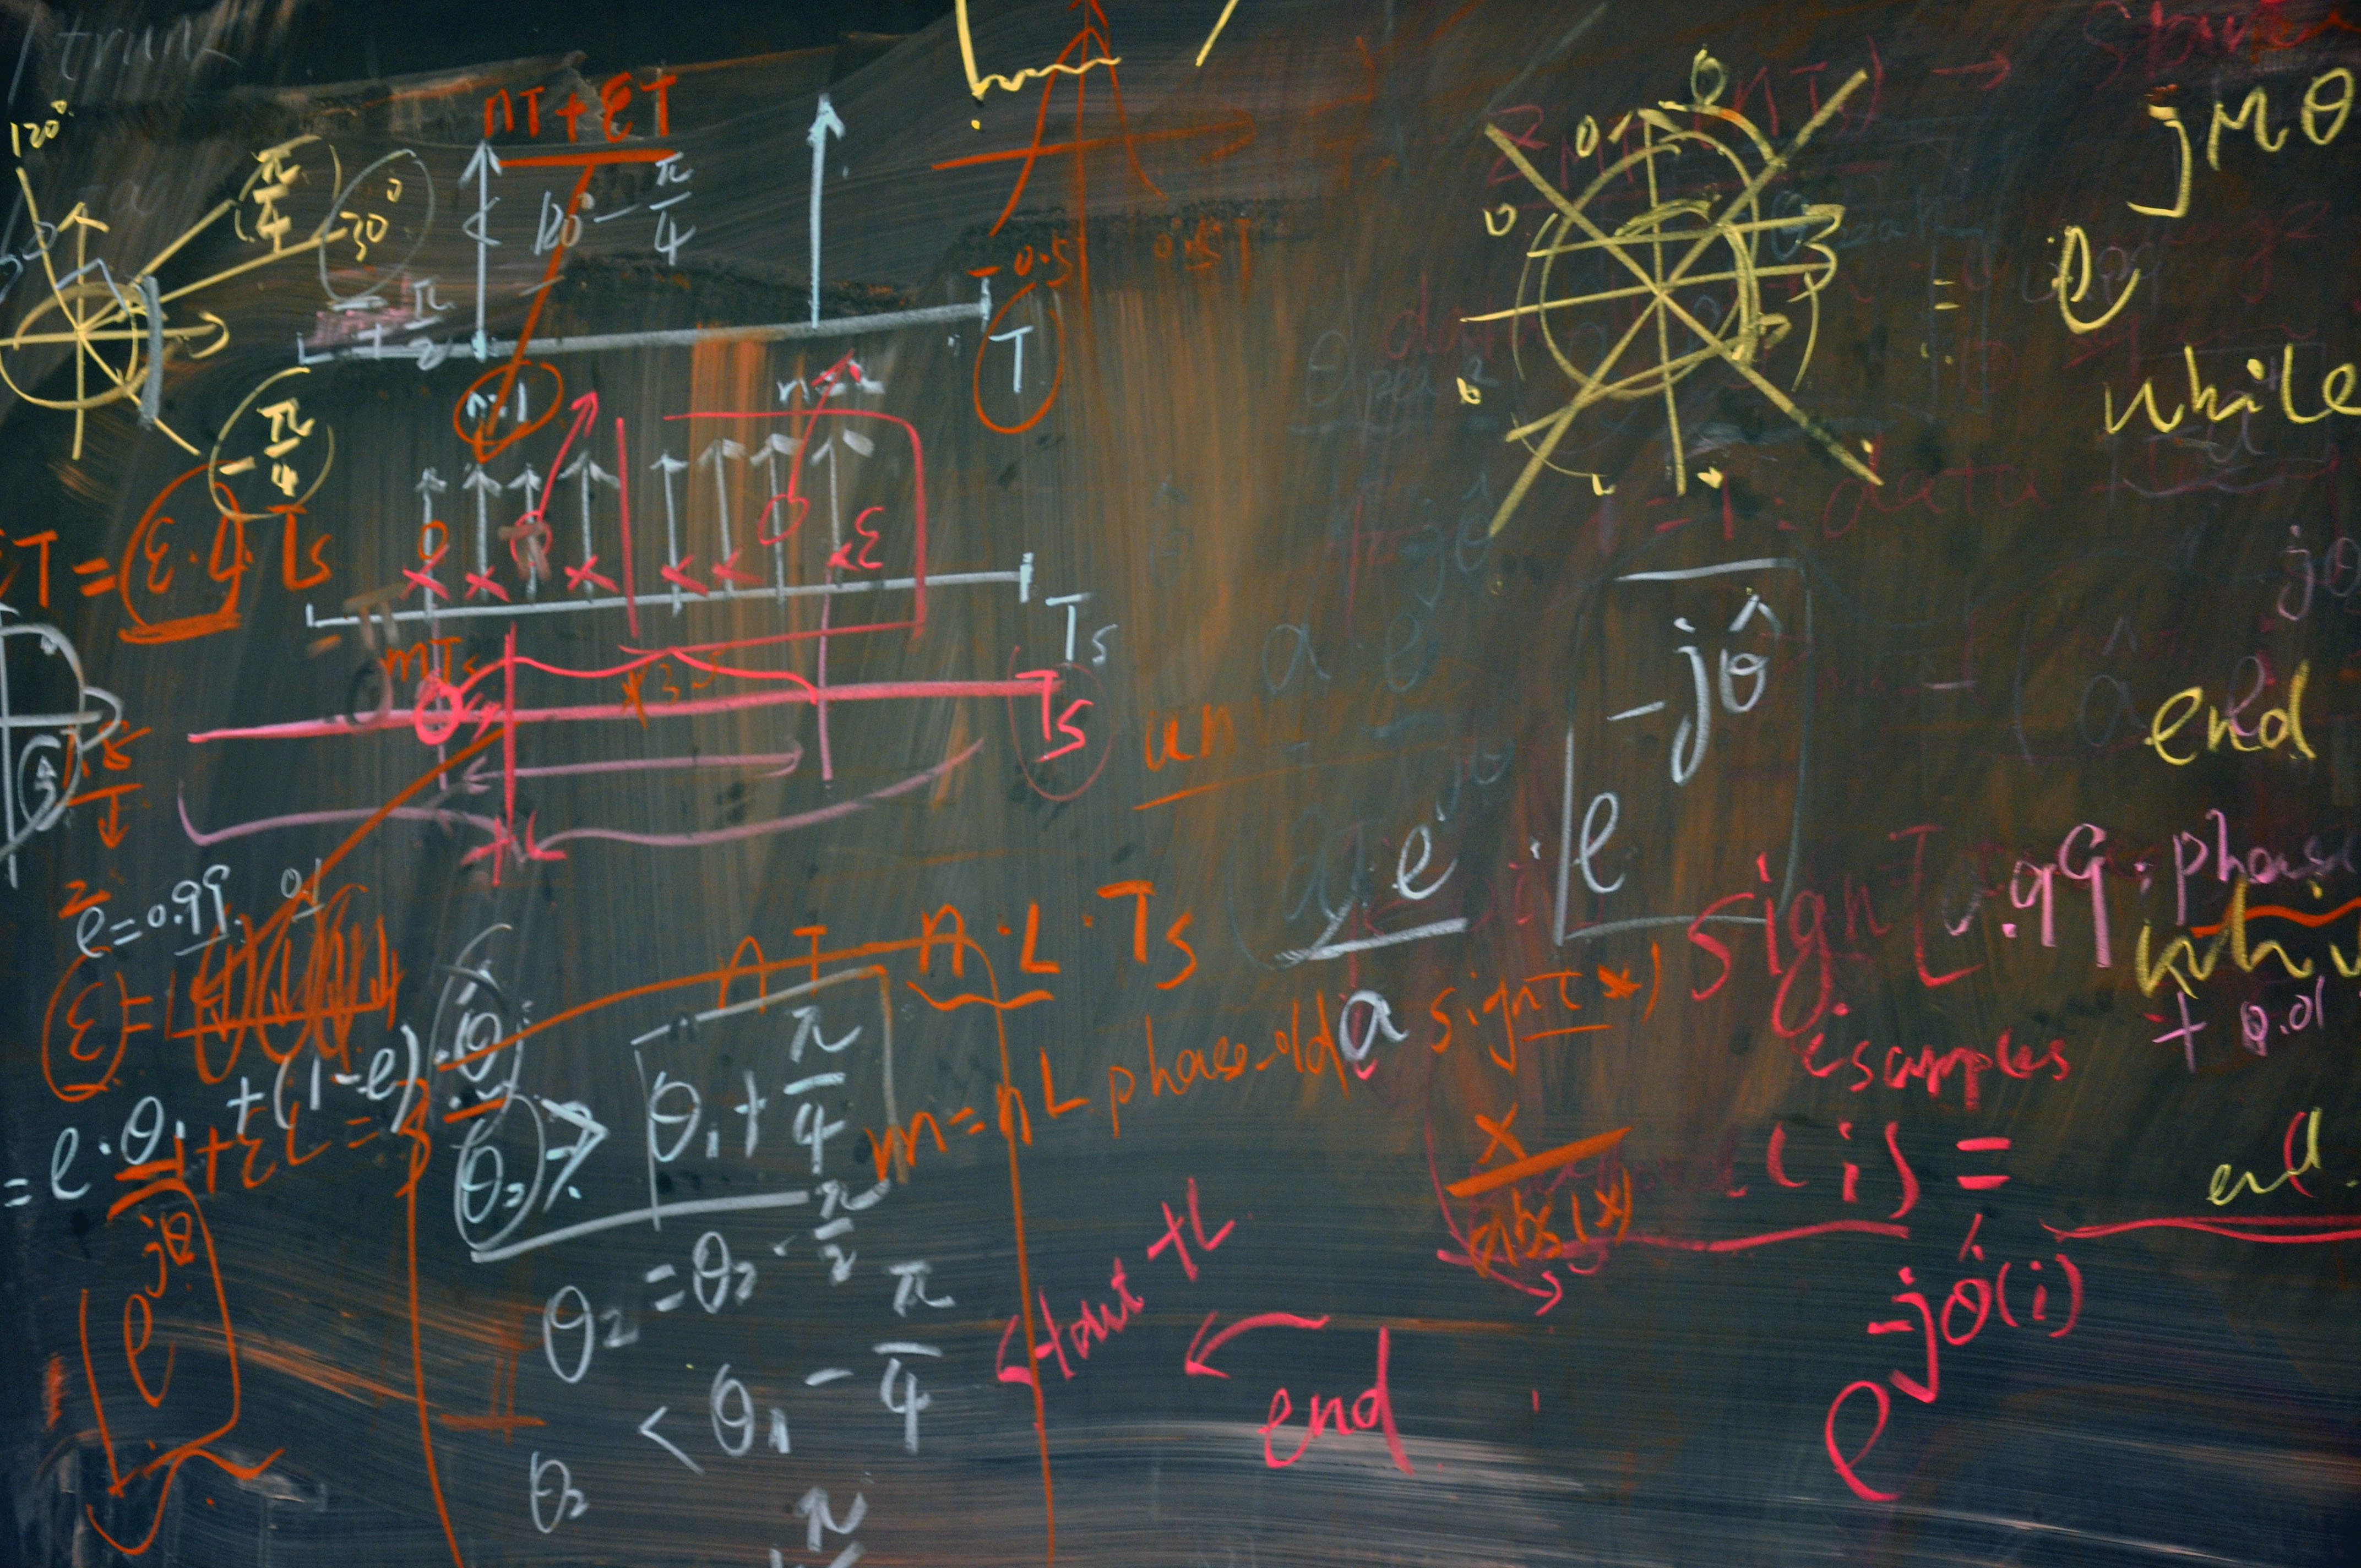 Blackboard with mathformulas